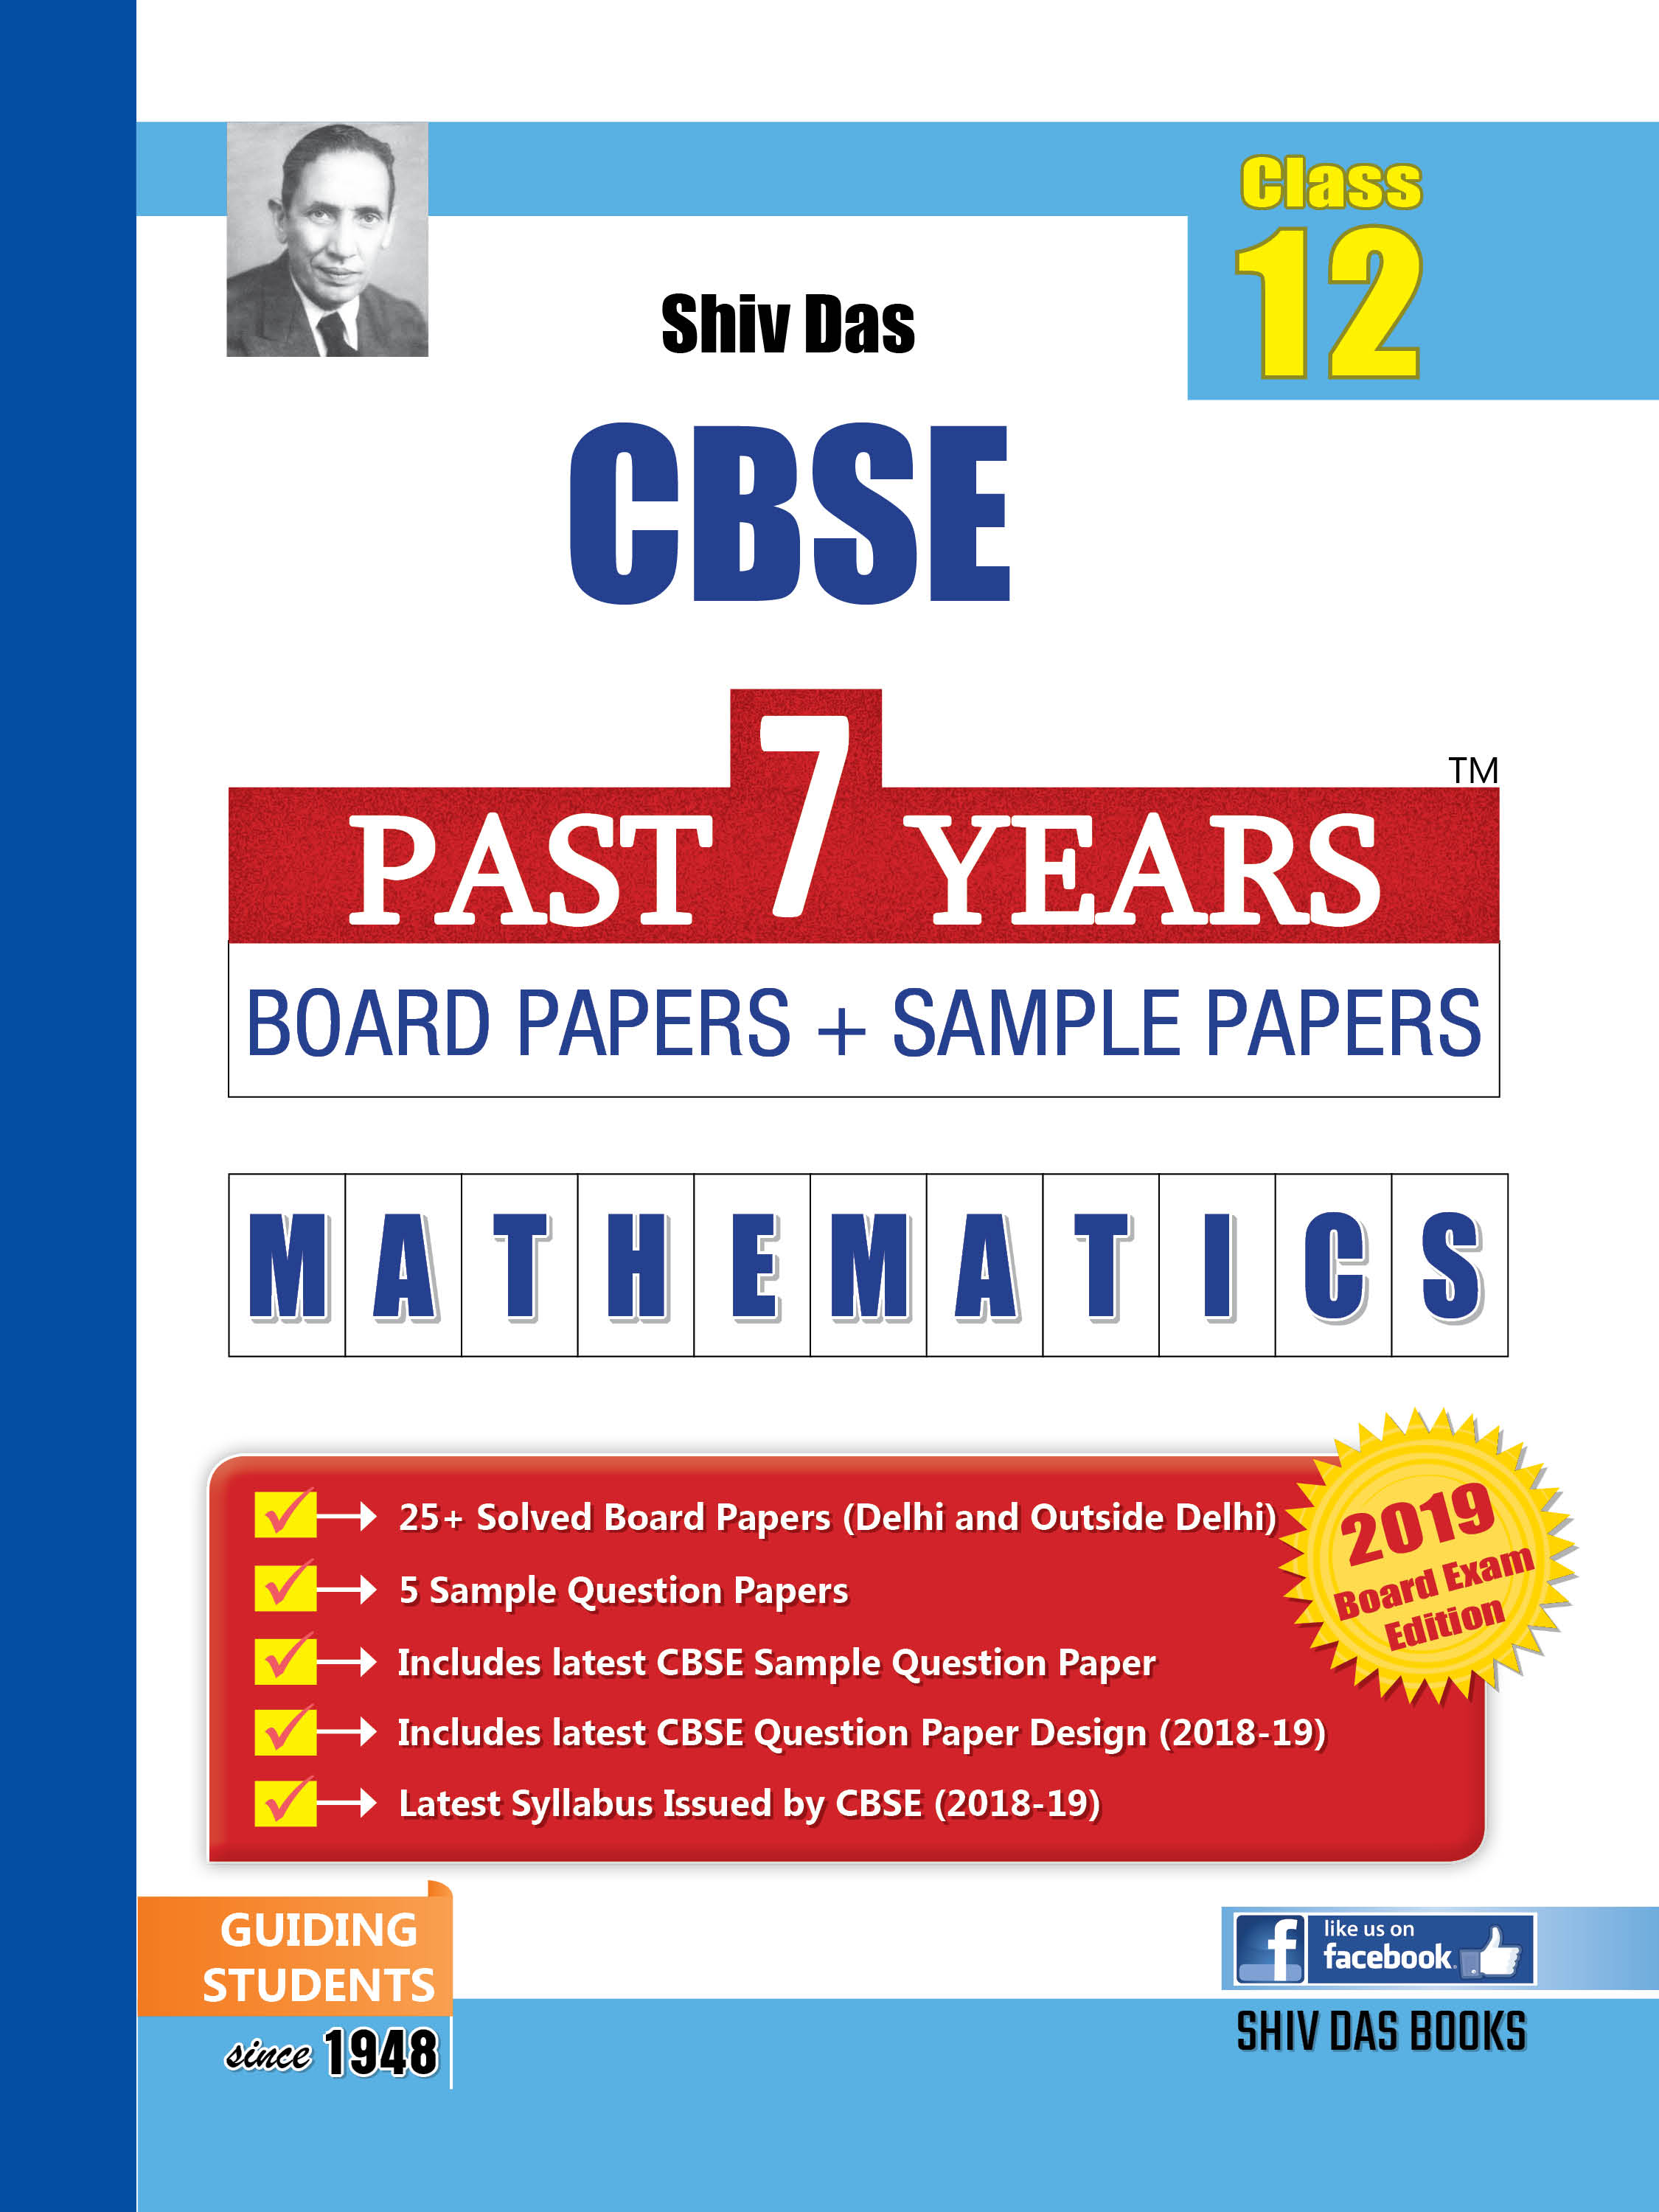 CBSE Past 7 Years Solved Board Papers+Sample Papers for Class 12 Mathematics (2019 Board Exam Edition)